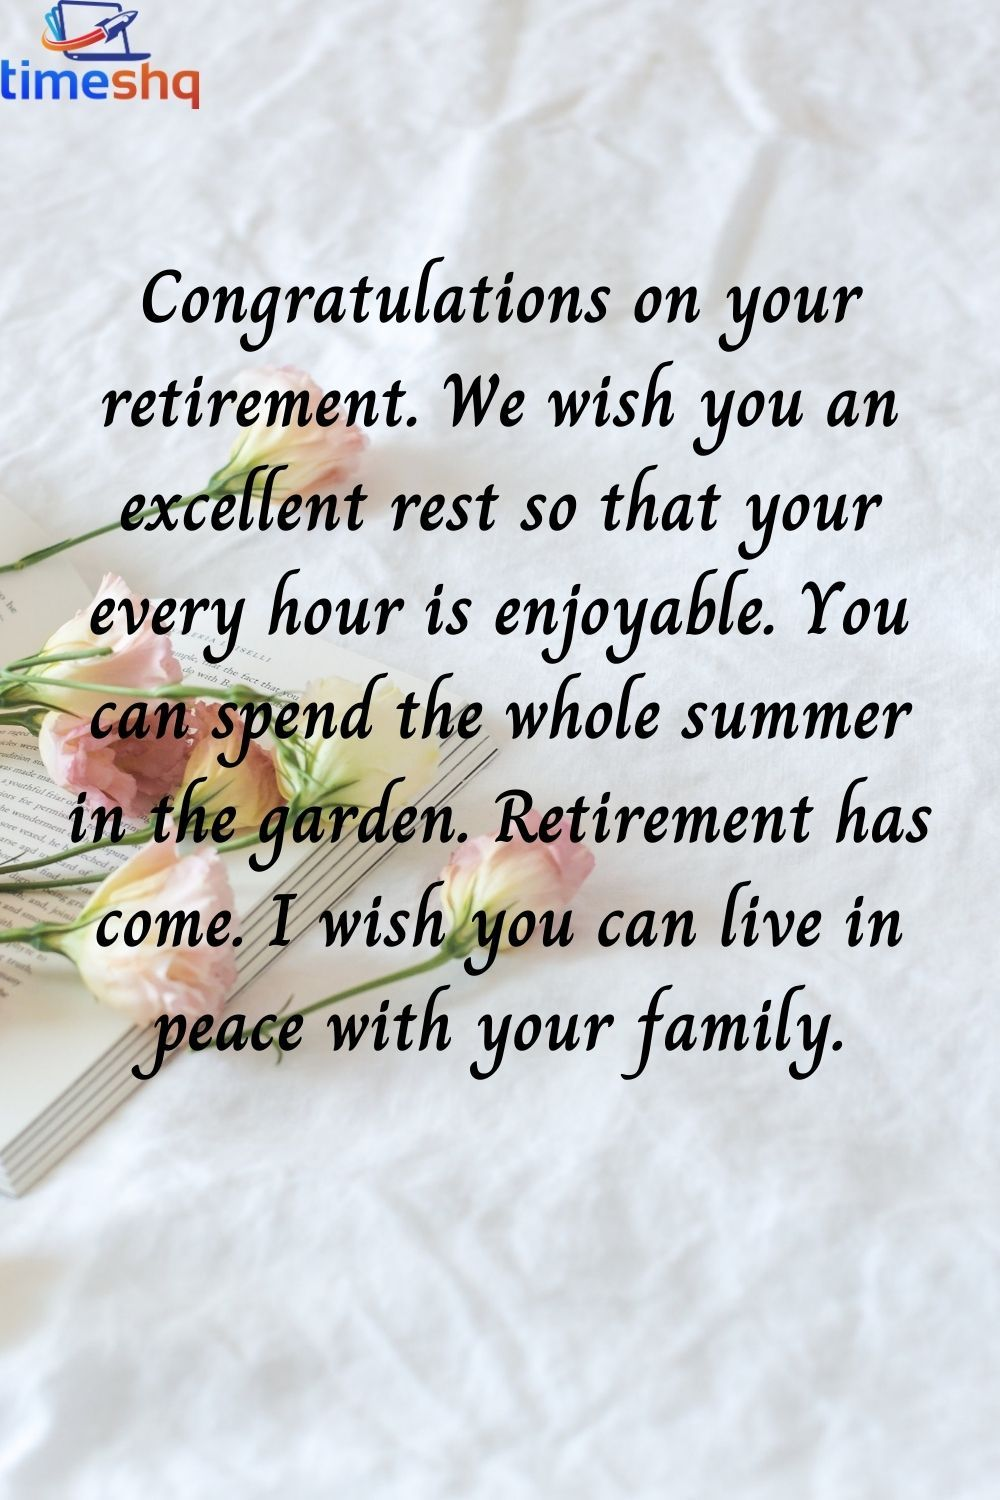 Happy Retirement Images And Quotes : happy, retirement, images, quotes, Happy, Retirement, Wishes, Wishes,, Quotes